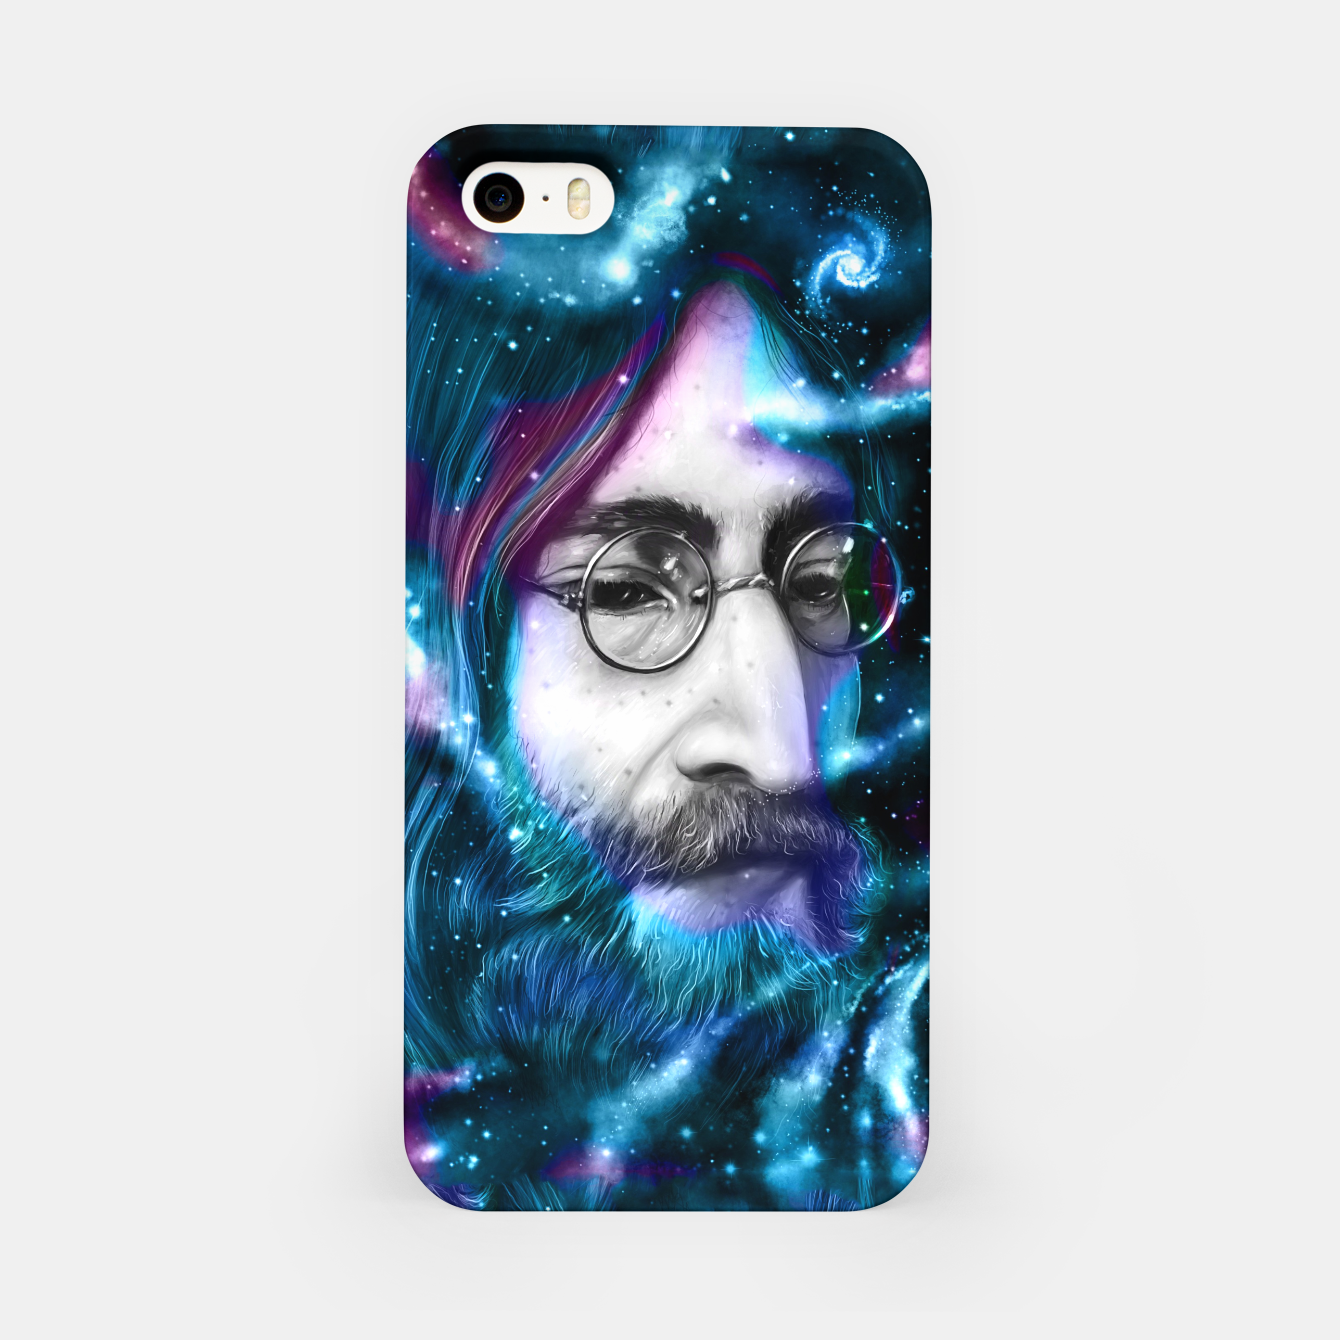 Image of John iPhone Case - Live Heroes